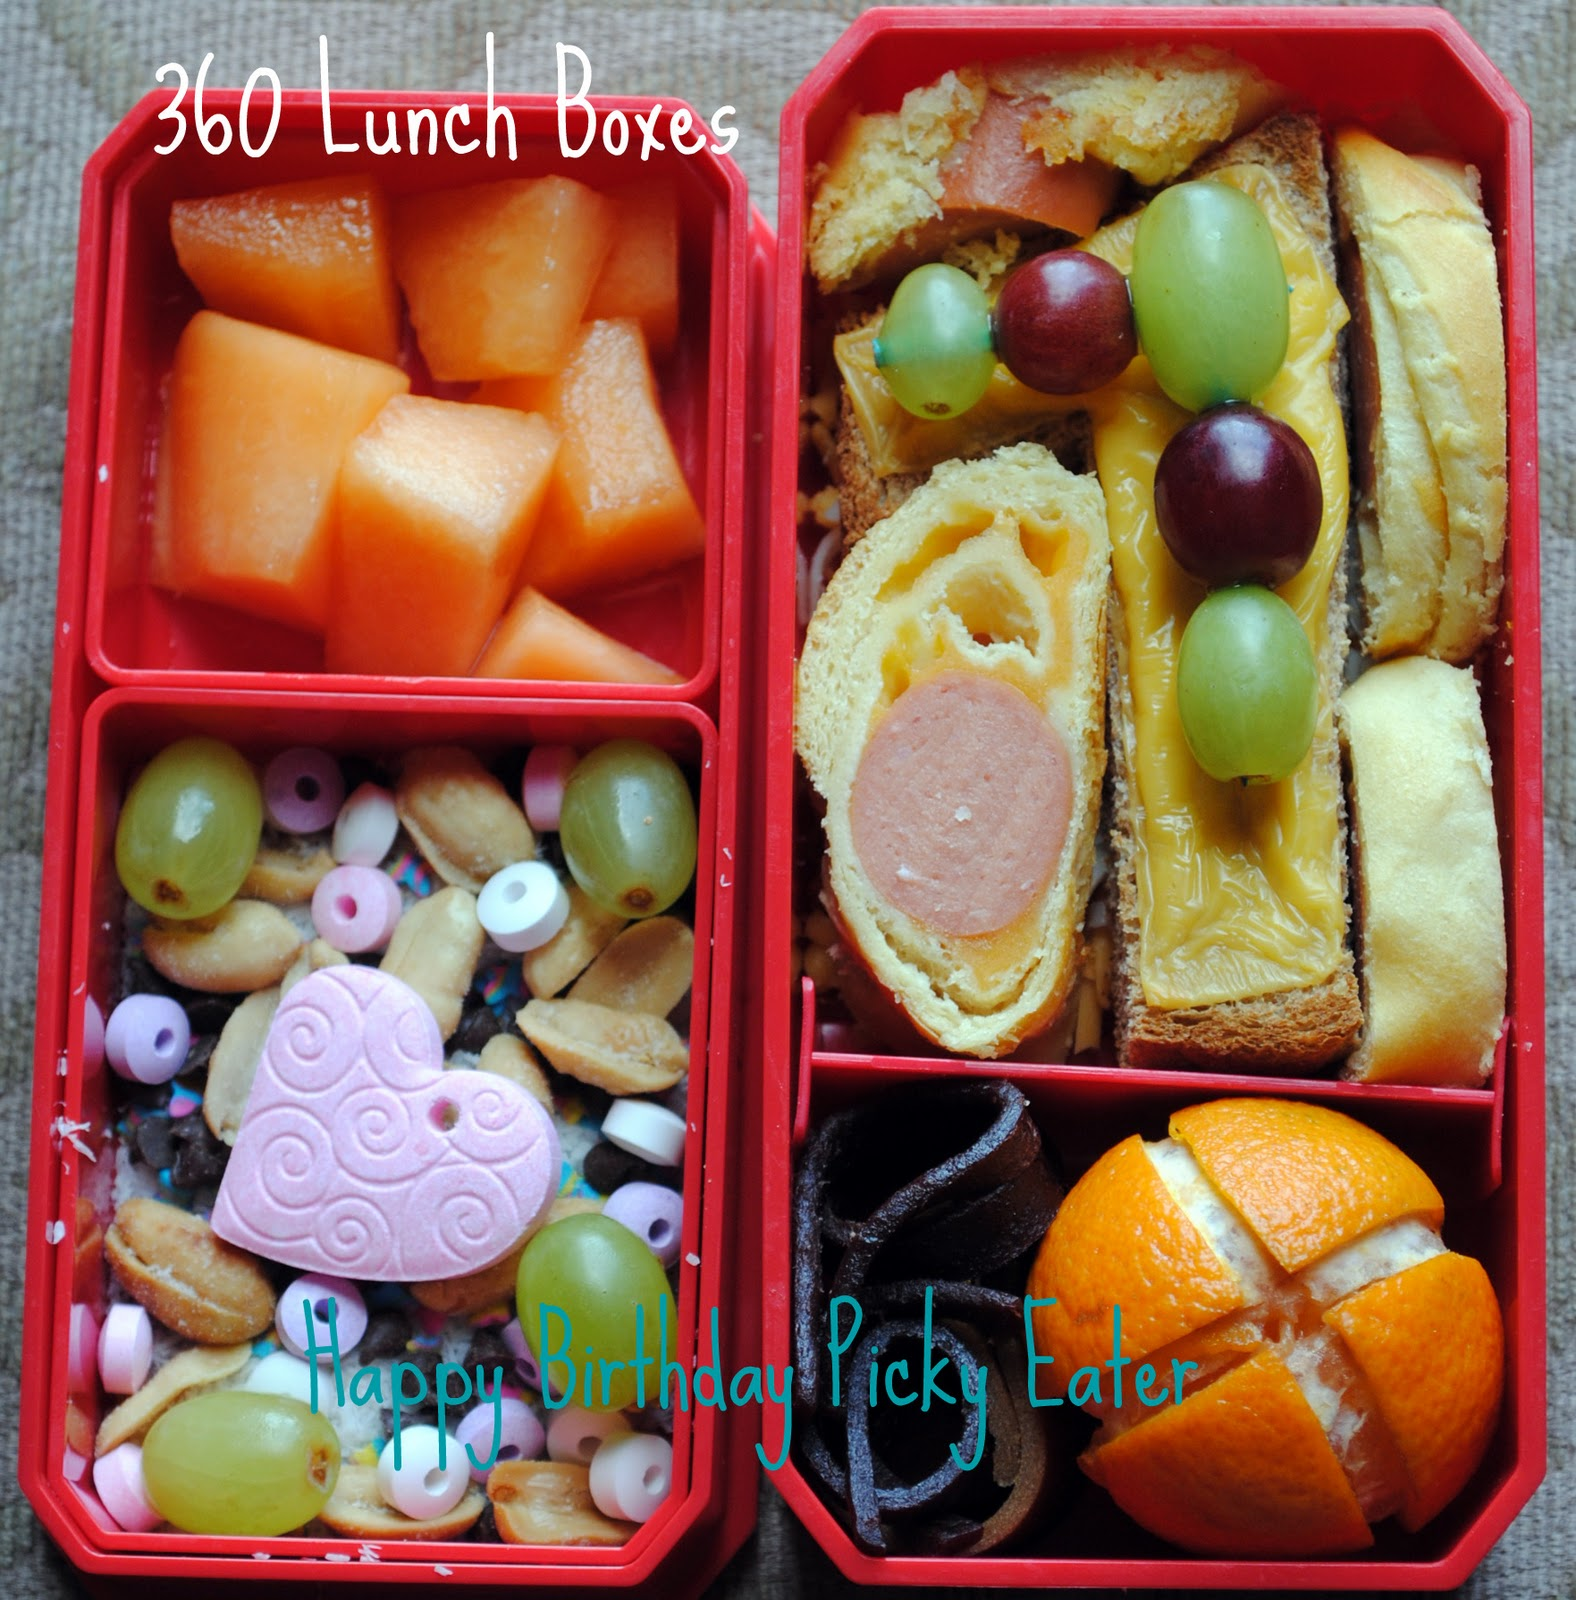 360 lunch boxes bento for the birthday girl. Black Bedroom Furniture Sets. Home Design Ideas